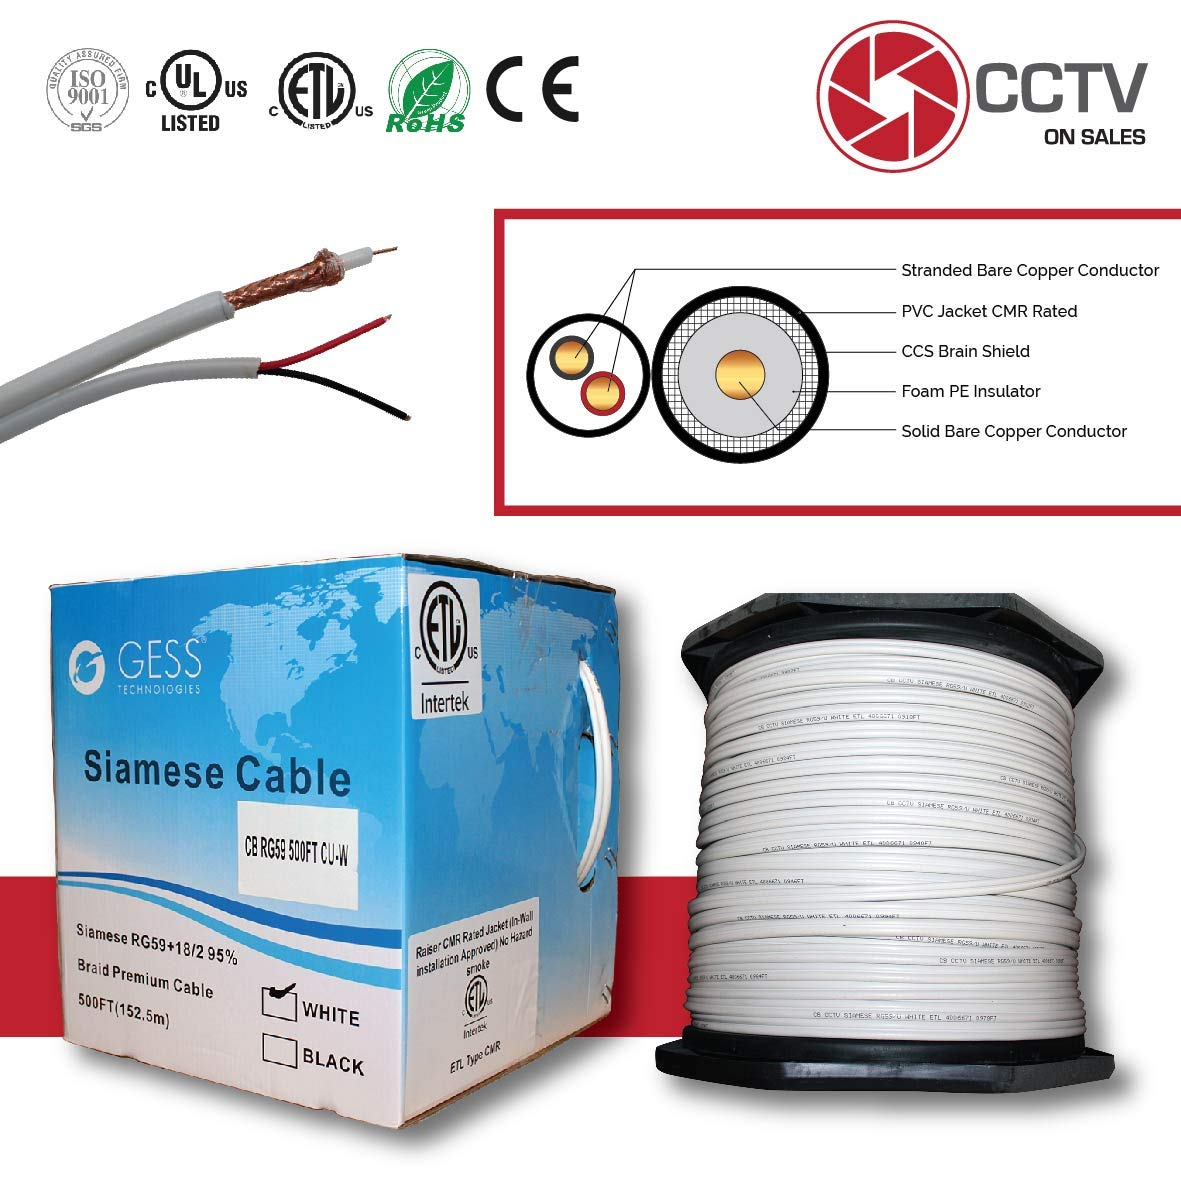 CCTVOnSales RG59 500FT Siamese Combo Coaxial Solid Bare Copper White, 20AWG Video Plus 18/2 Copper Power Cable, cm, CMX, CMR Rated ETL Listed (Siamese Cable Copper 500FT White)